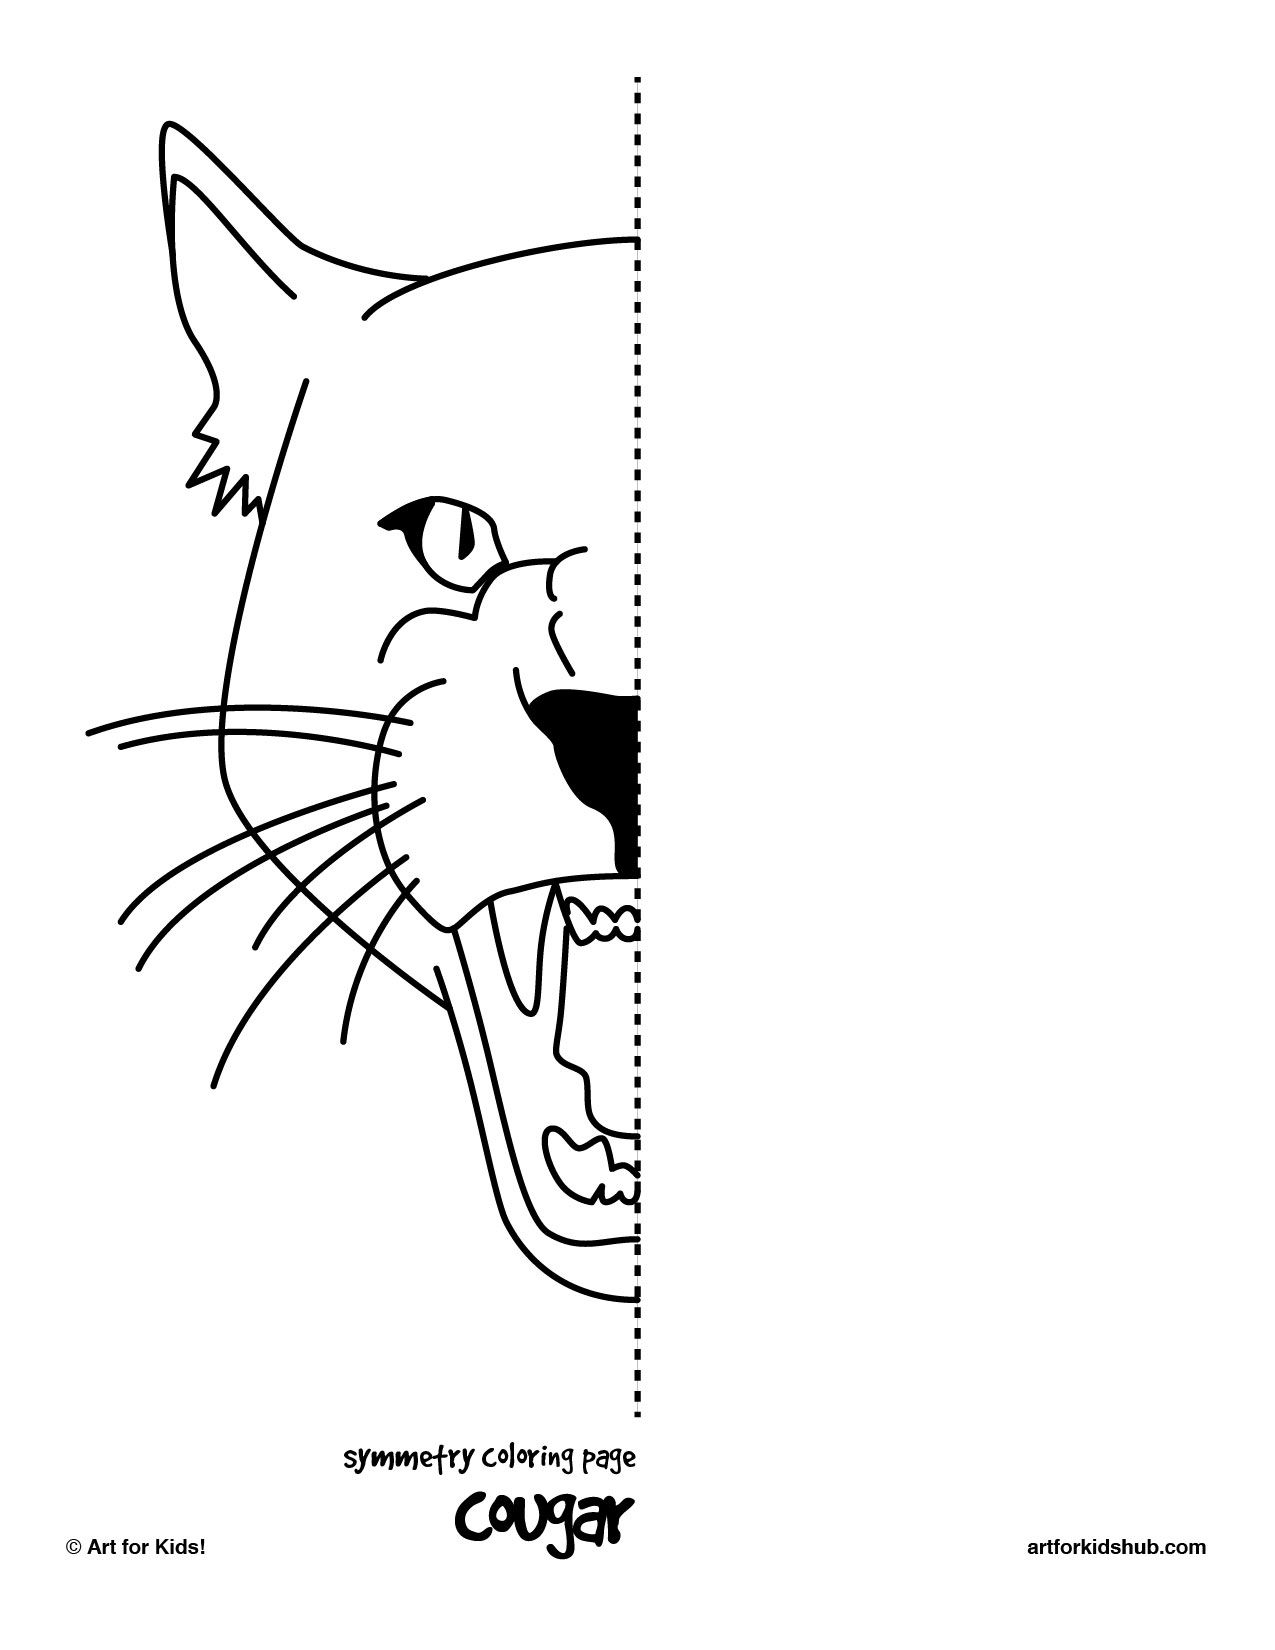 I made 6 free coloring pages to illustrate symmetry…cat